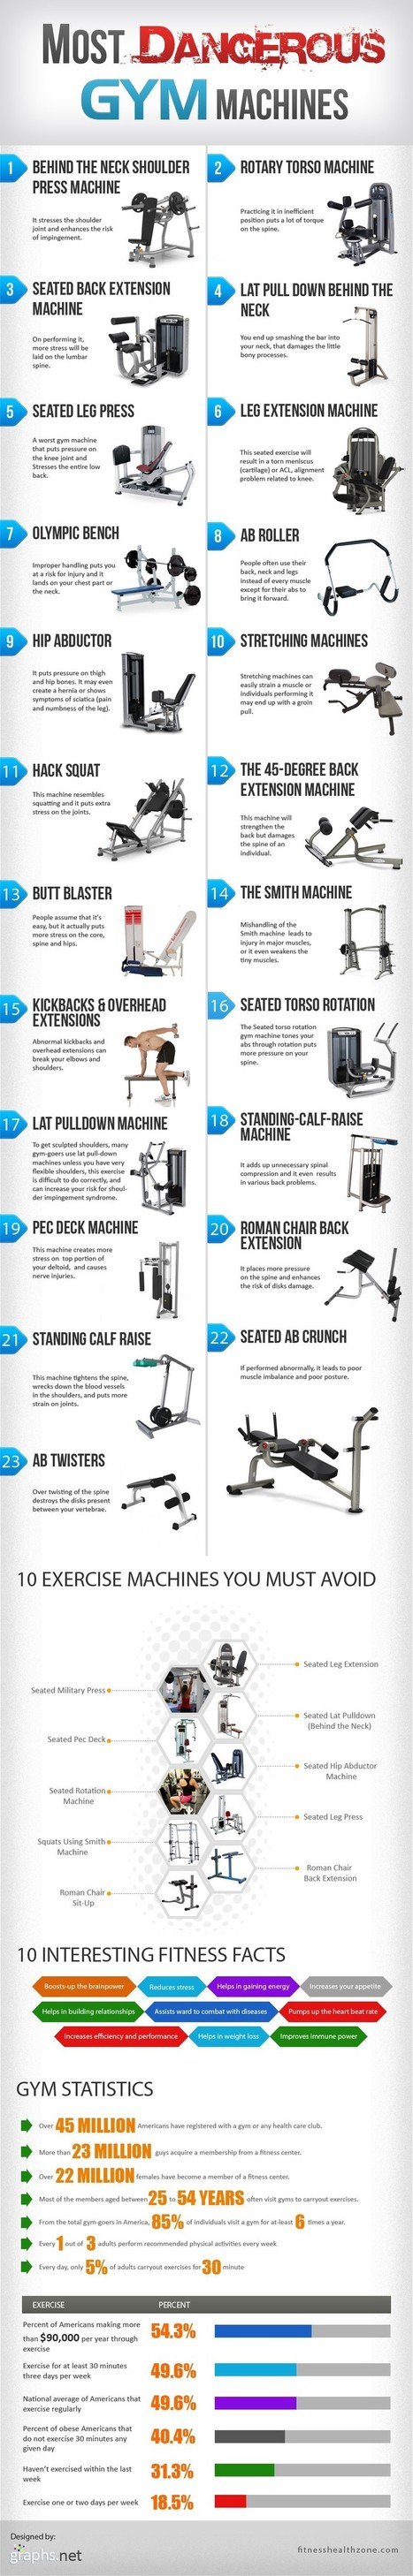 20+ Most Dangerous Gym Machines | All Infographics | All Infographics | Scoop.it